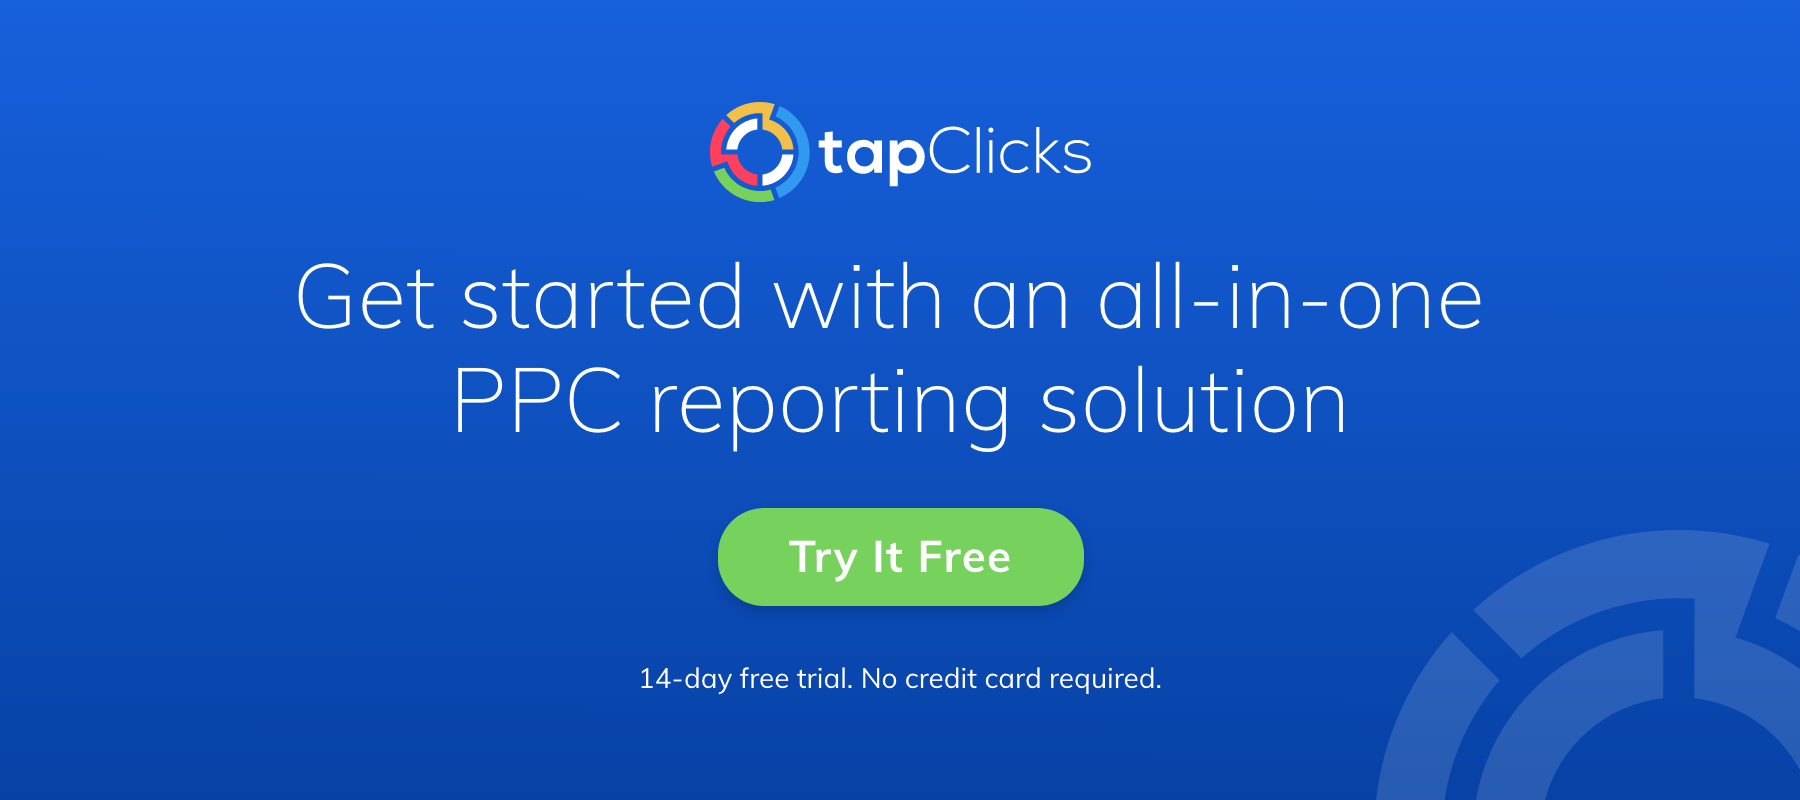 TapClicks: Get Started with an all-in-one PPC reporting solution